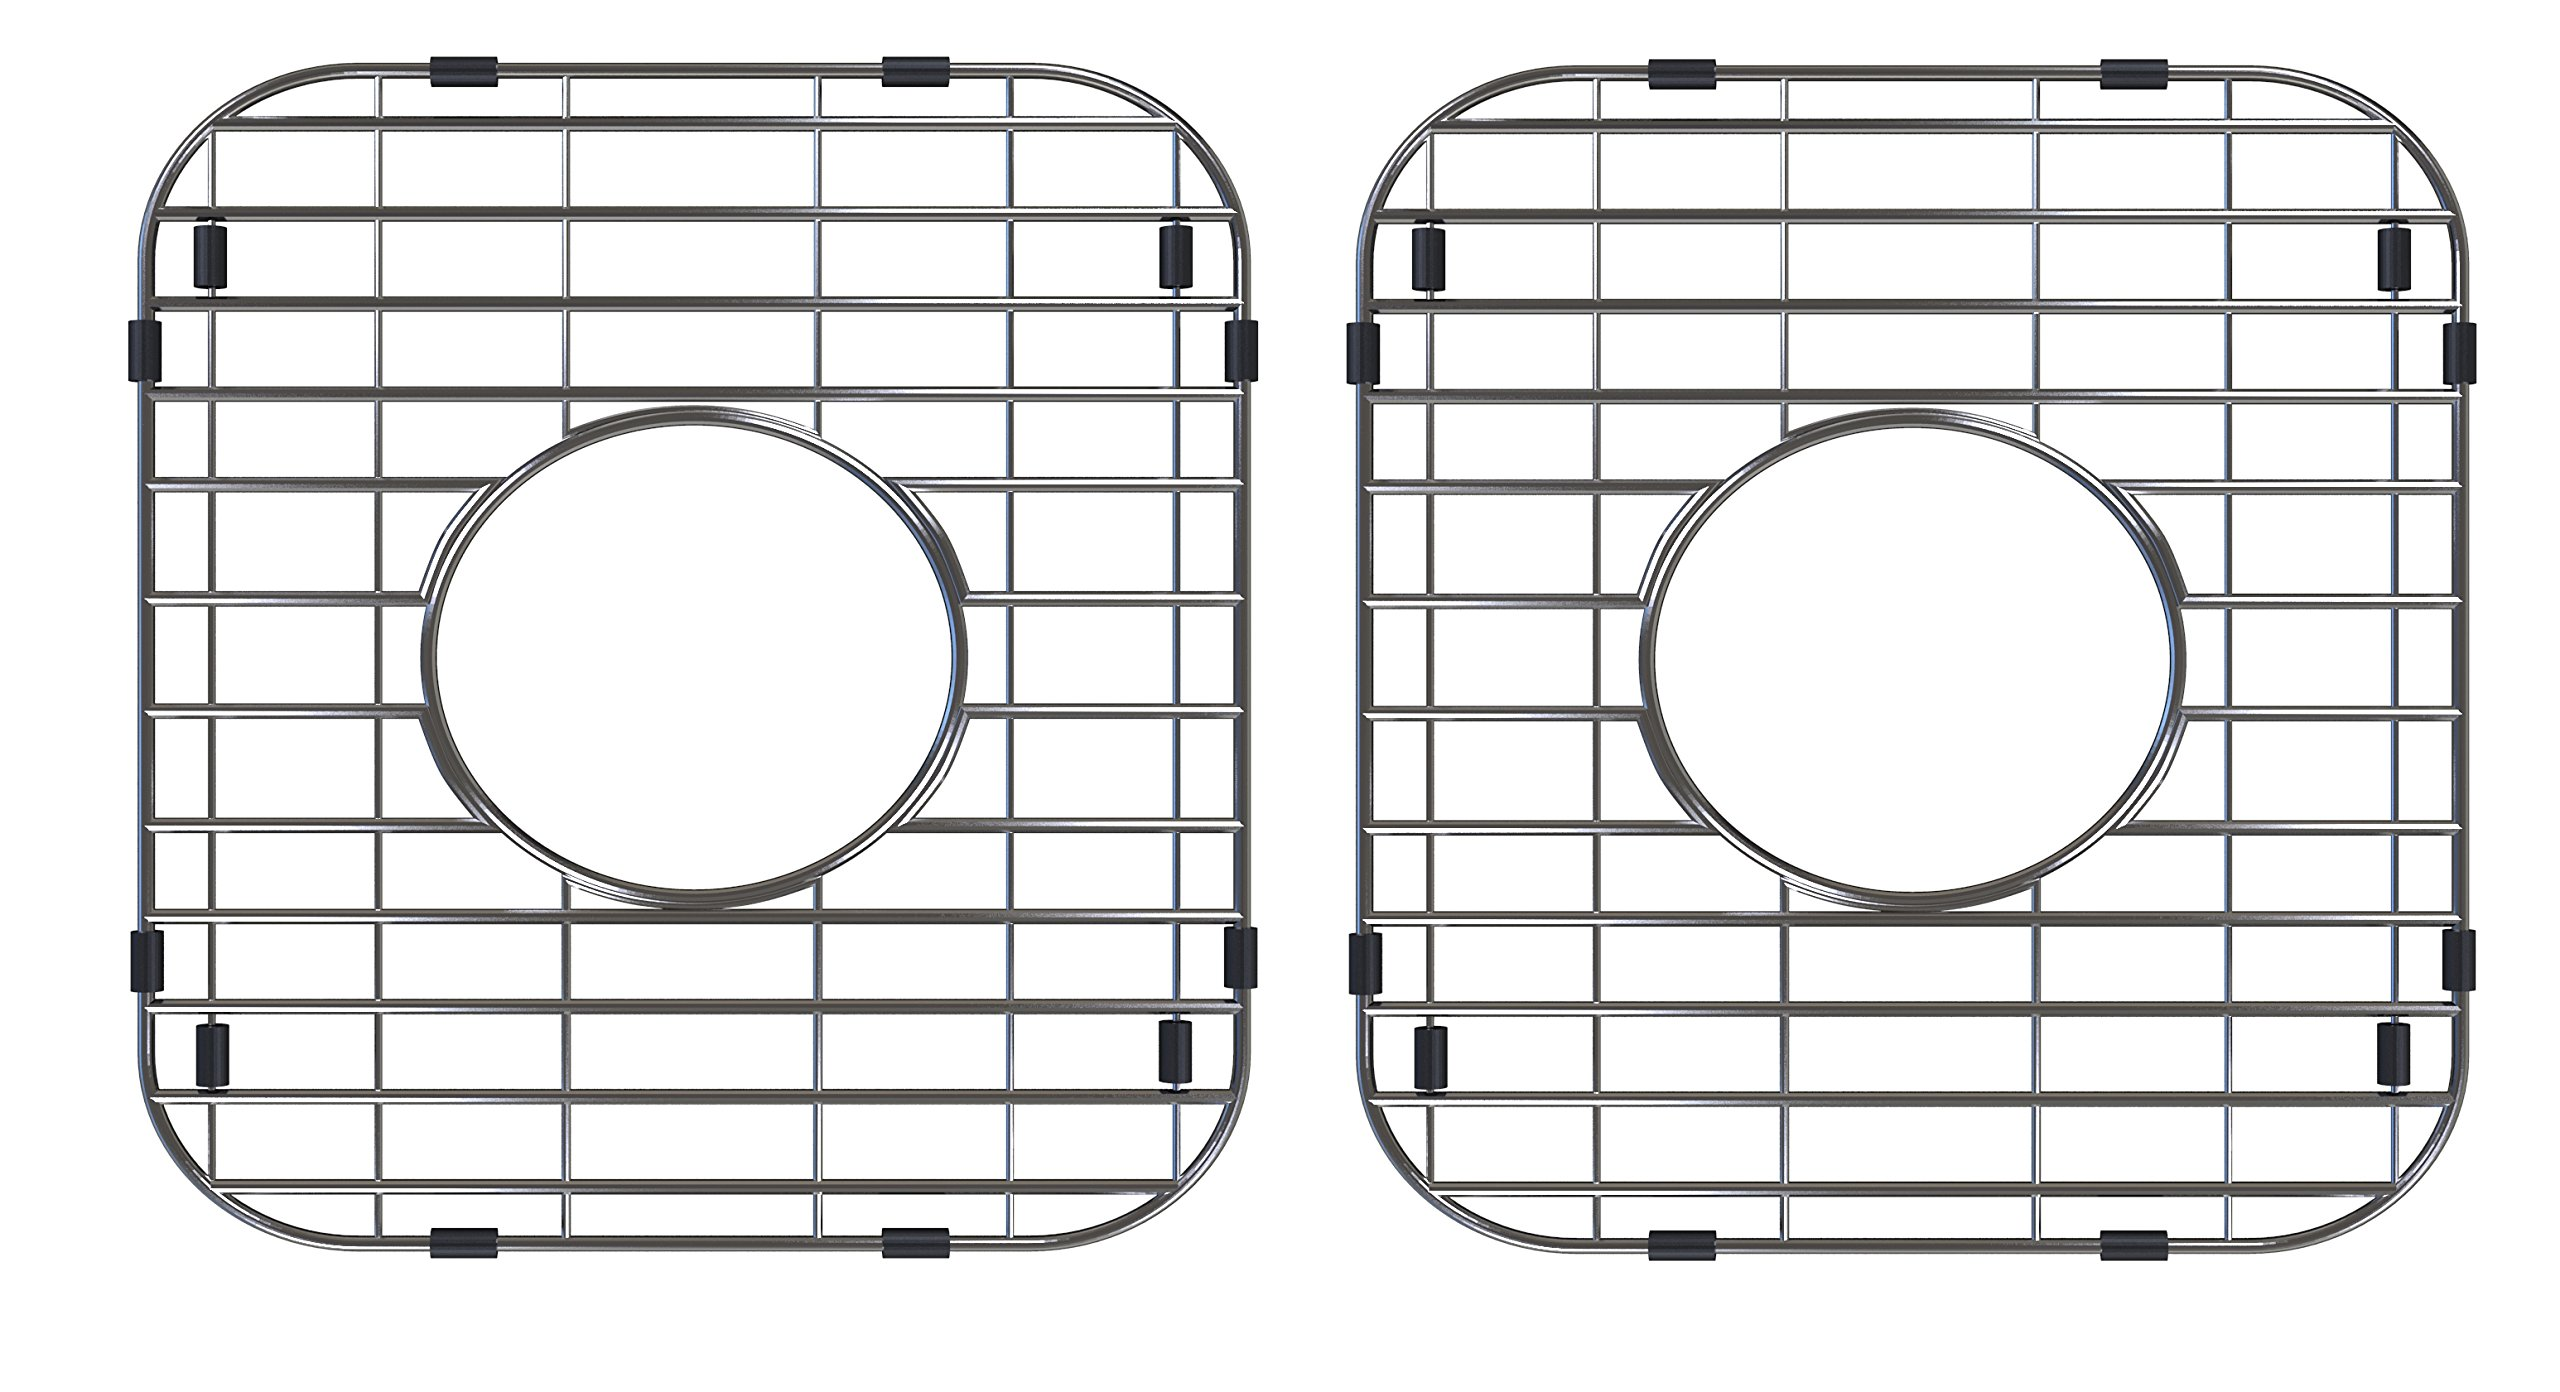 Walter Sinks Stainless Steel Kitchen 13'' x 11 Inch Protector Grids for Sinks Universal Double Bowl Drain Racks Grates Bottom Strainer Center Hole, Silver